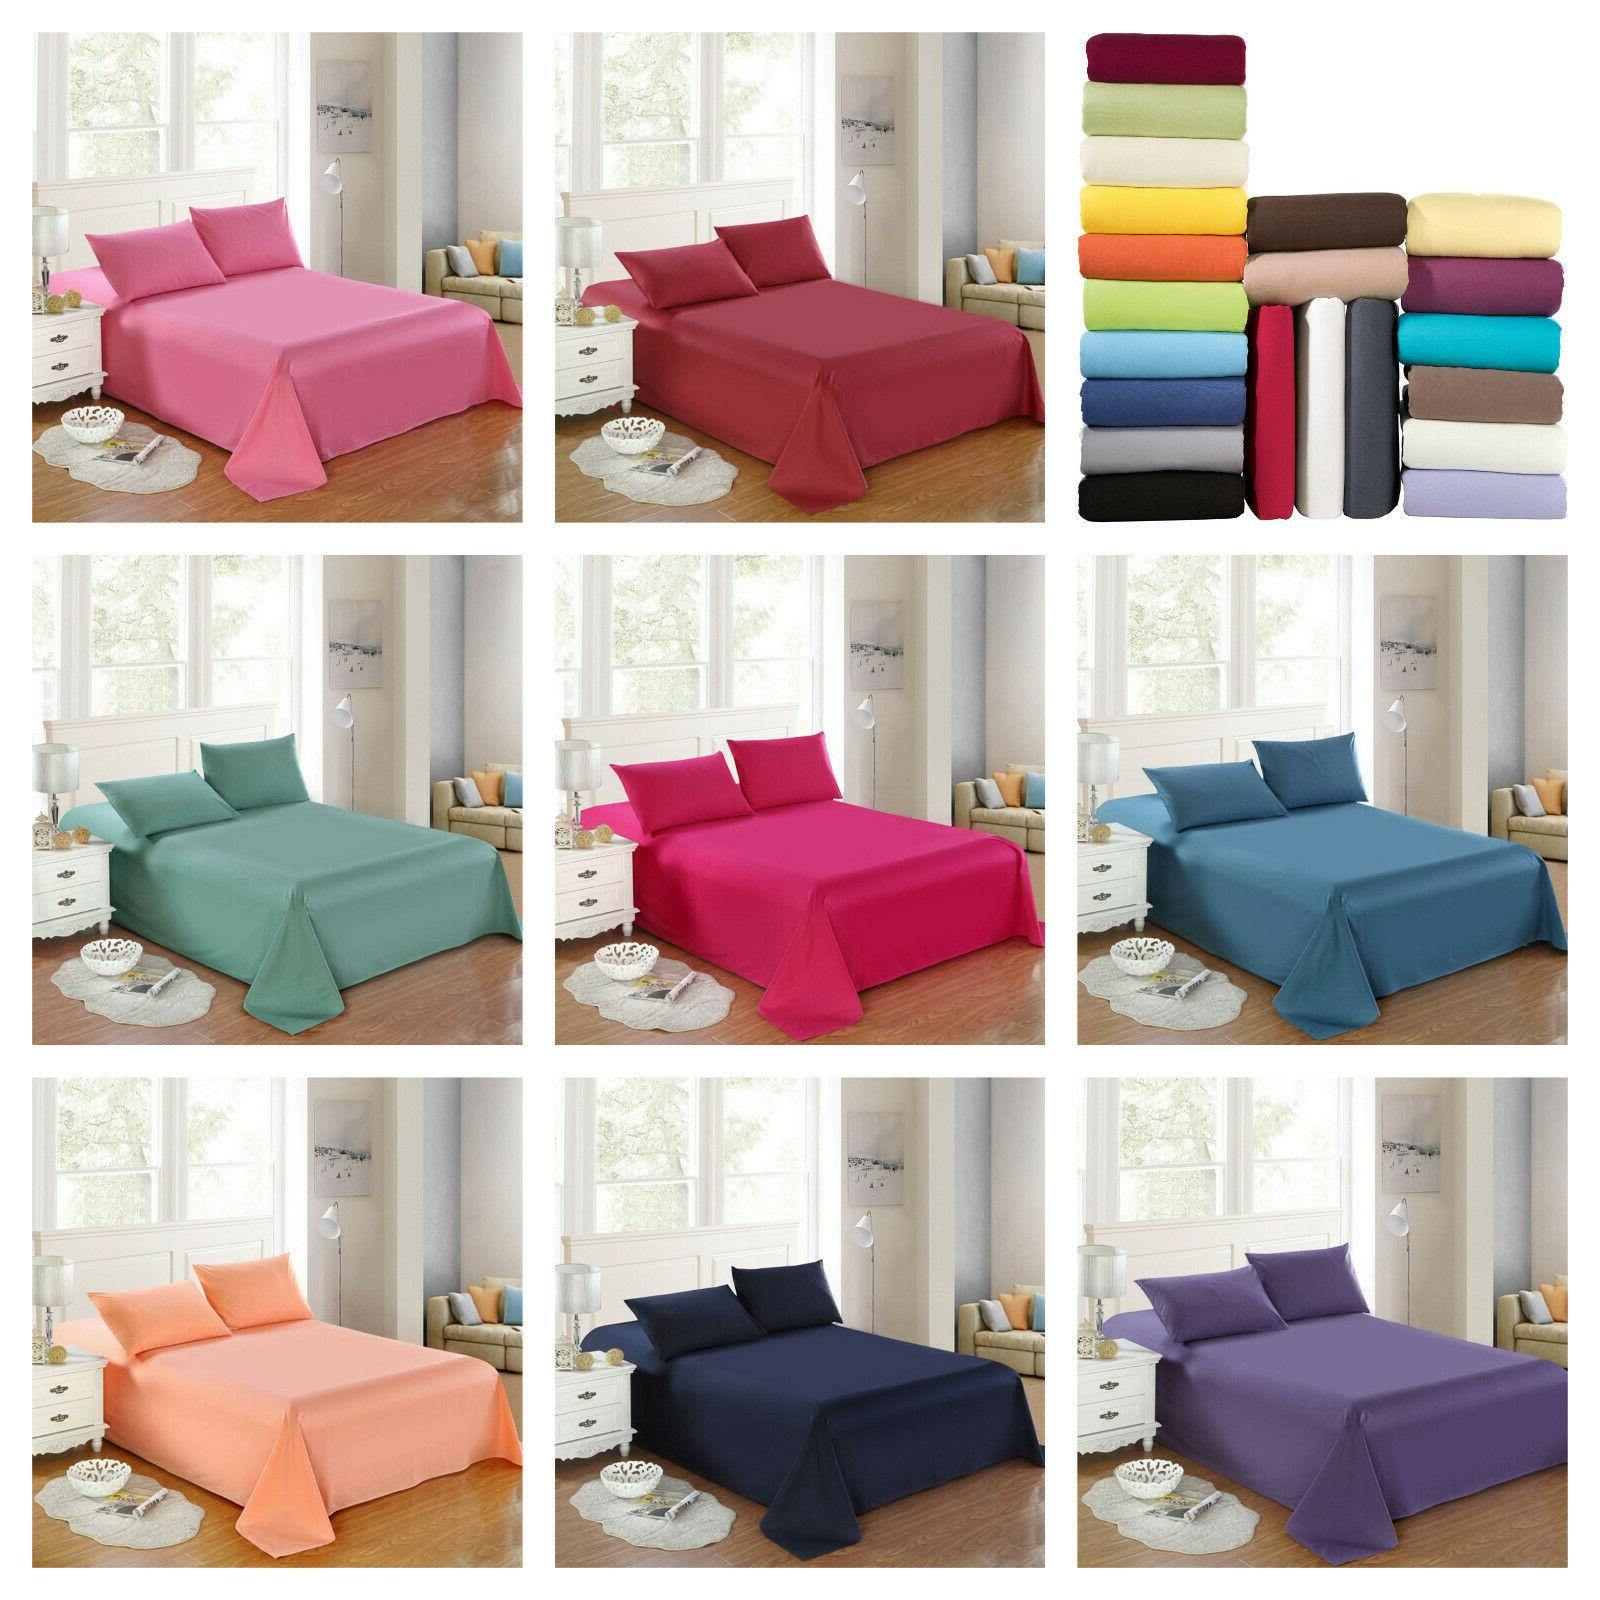 4 piece fitted bed sheet set 1800